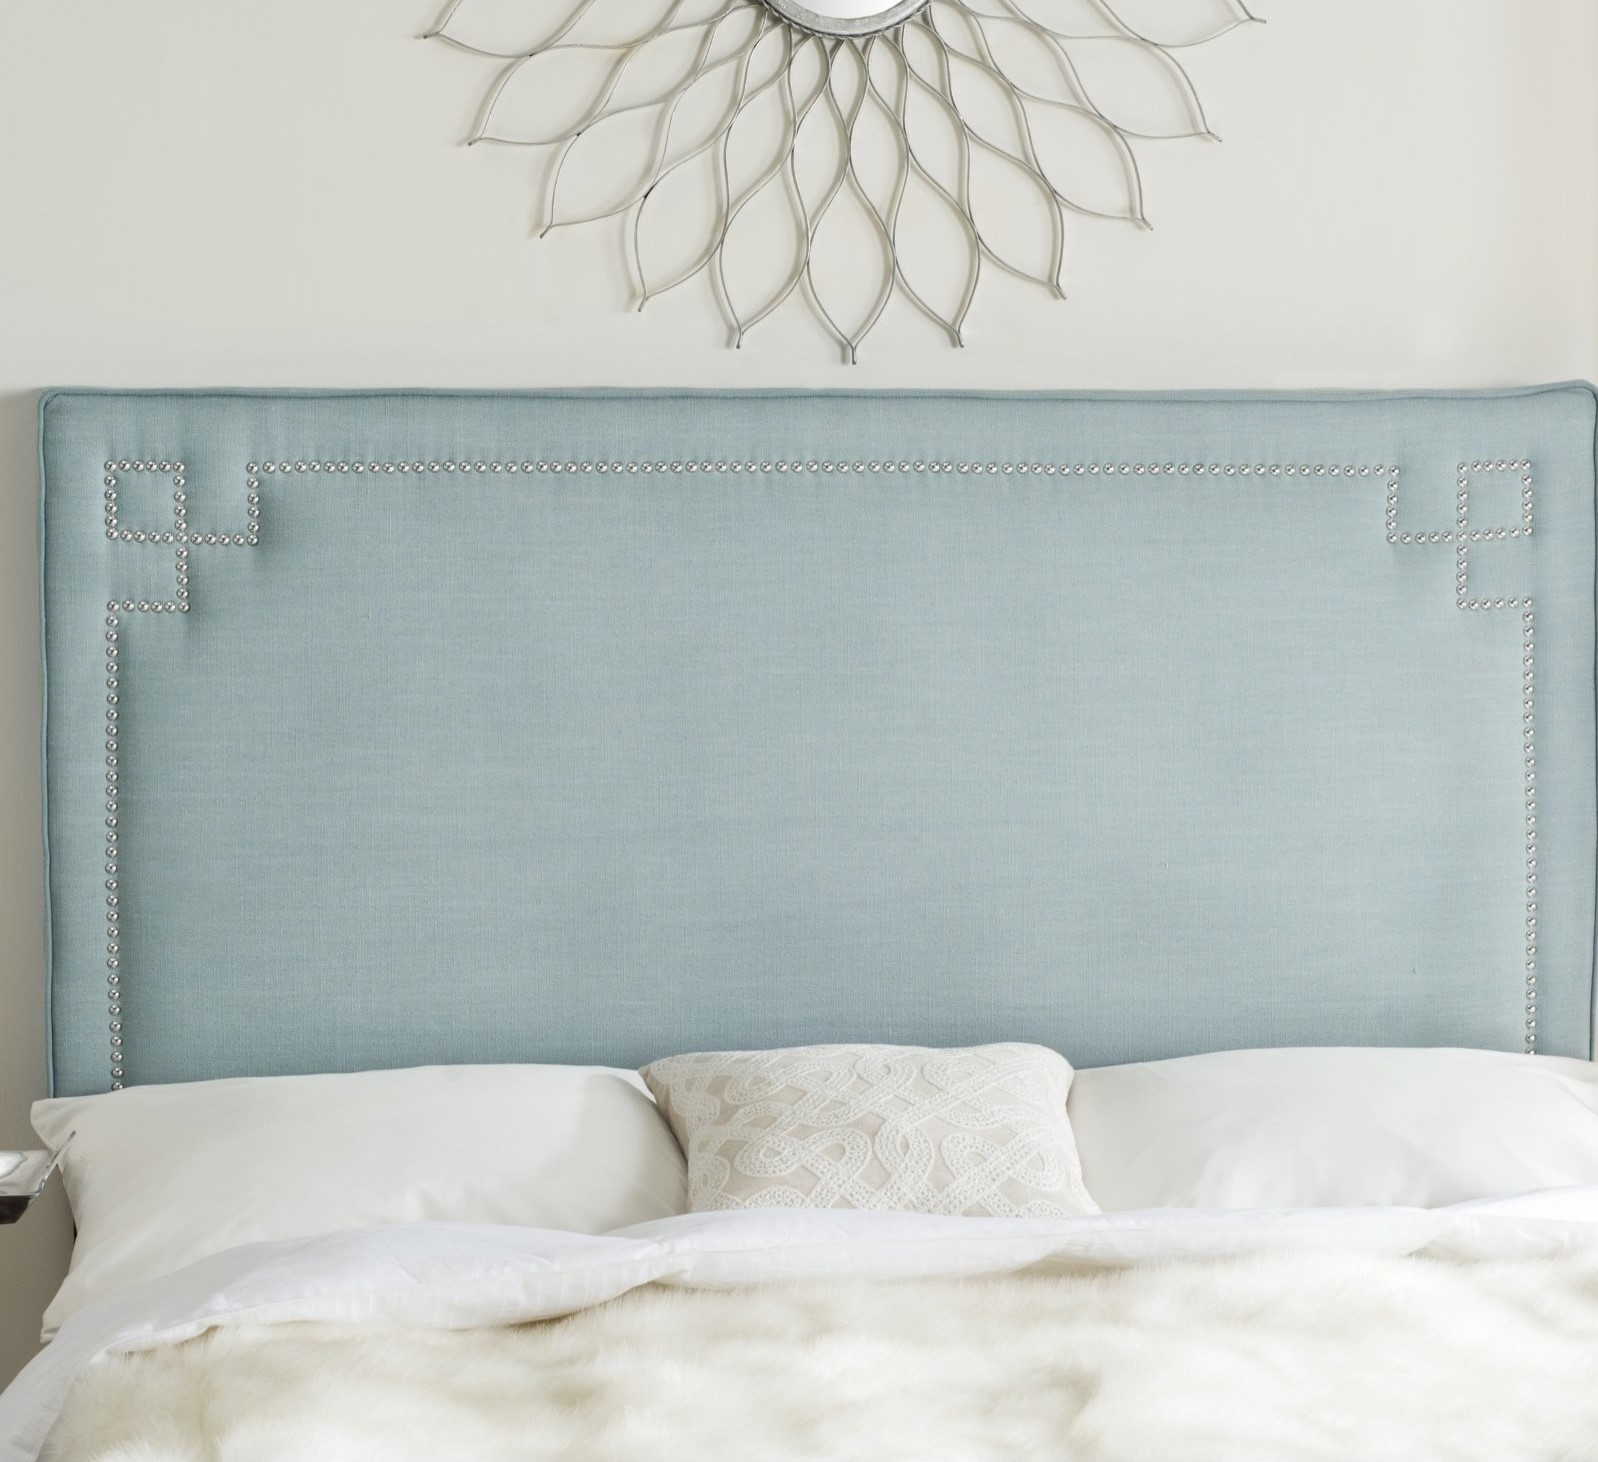 tufted navy teal ways gray beautiful with headboard to pin decorate velvet blue walls paint gentlemans sherwin williams wall